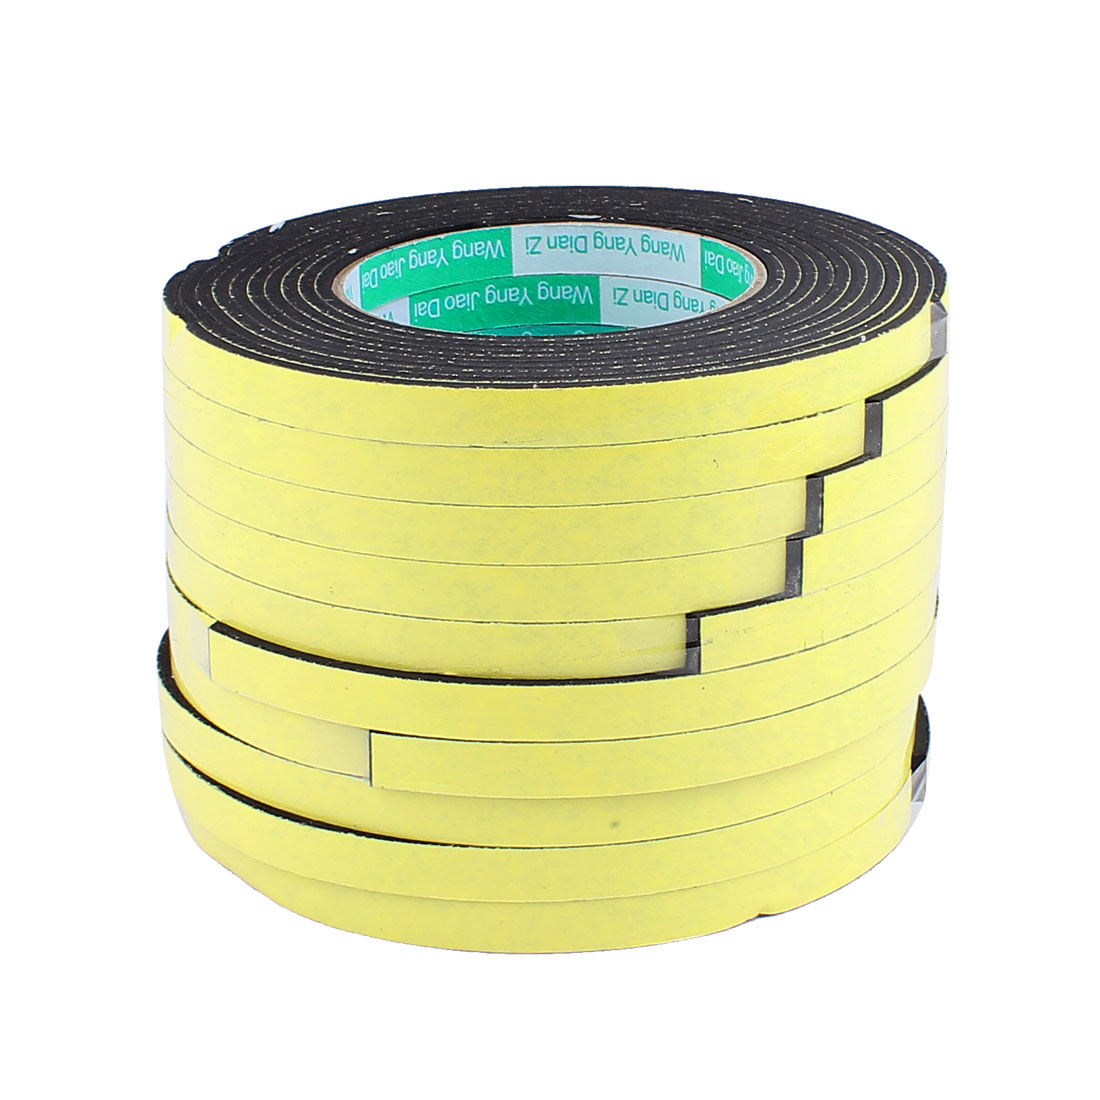 10 Pcs 1CM Width 4M Length 3MM Thick Single Sided Sealing Shockproof Sponge Tape